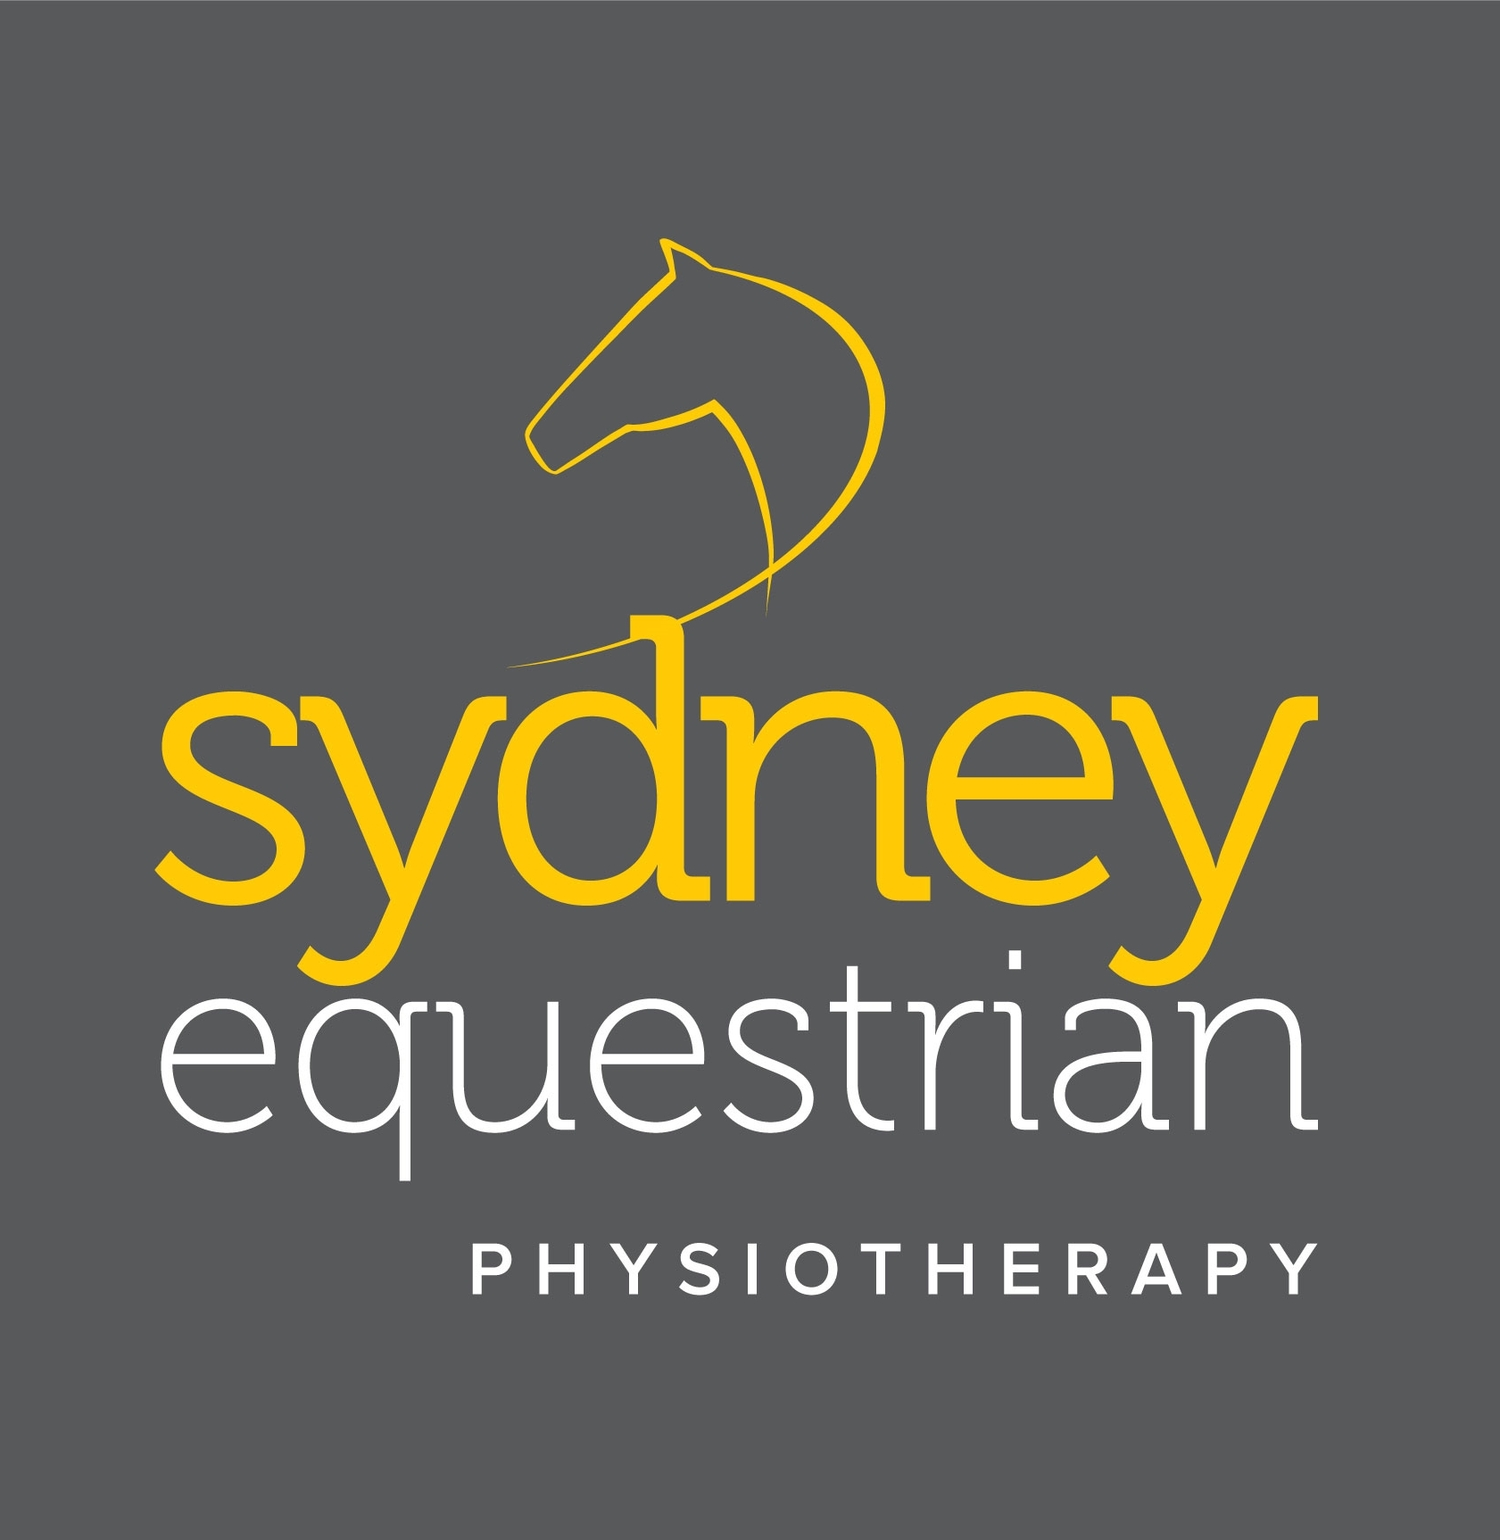 SE Physiotherapy